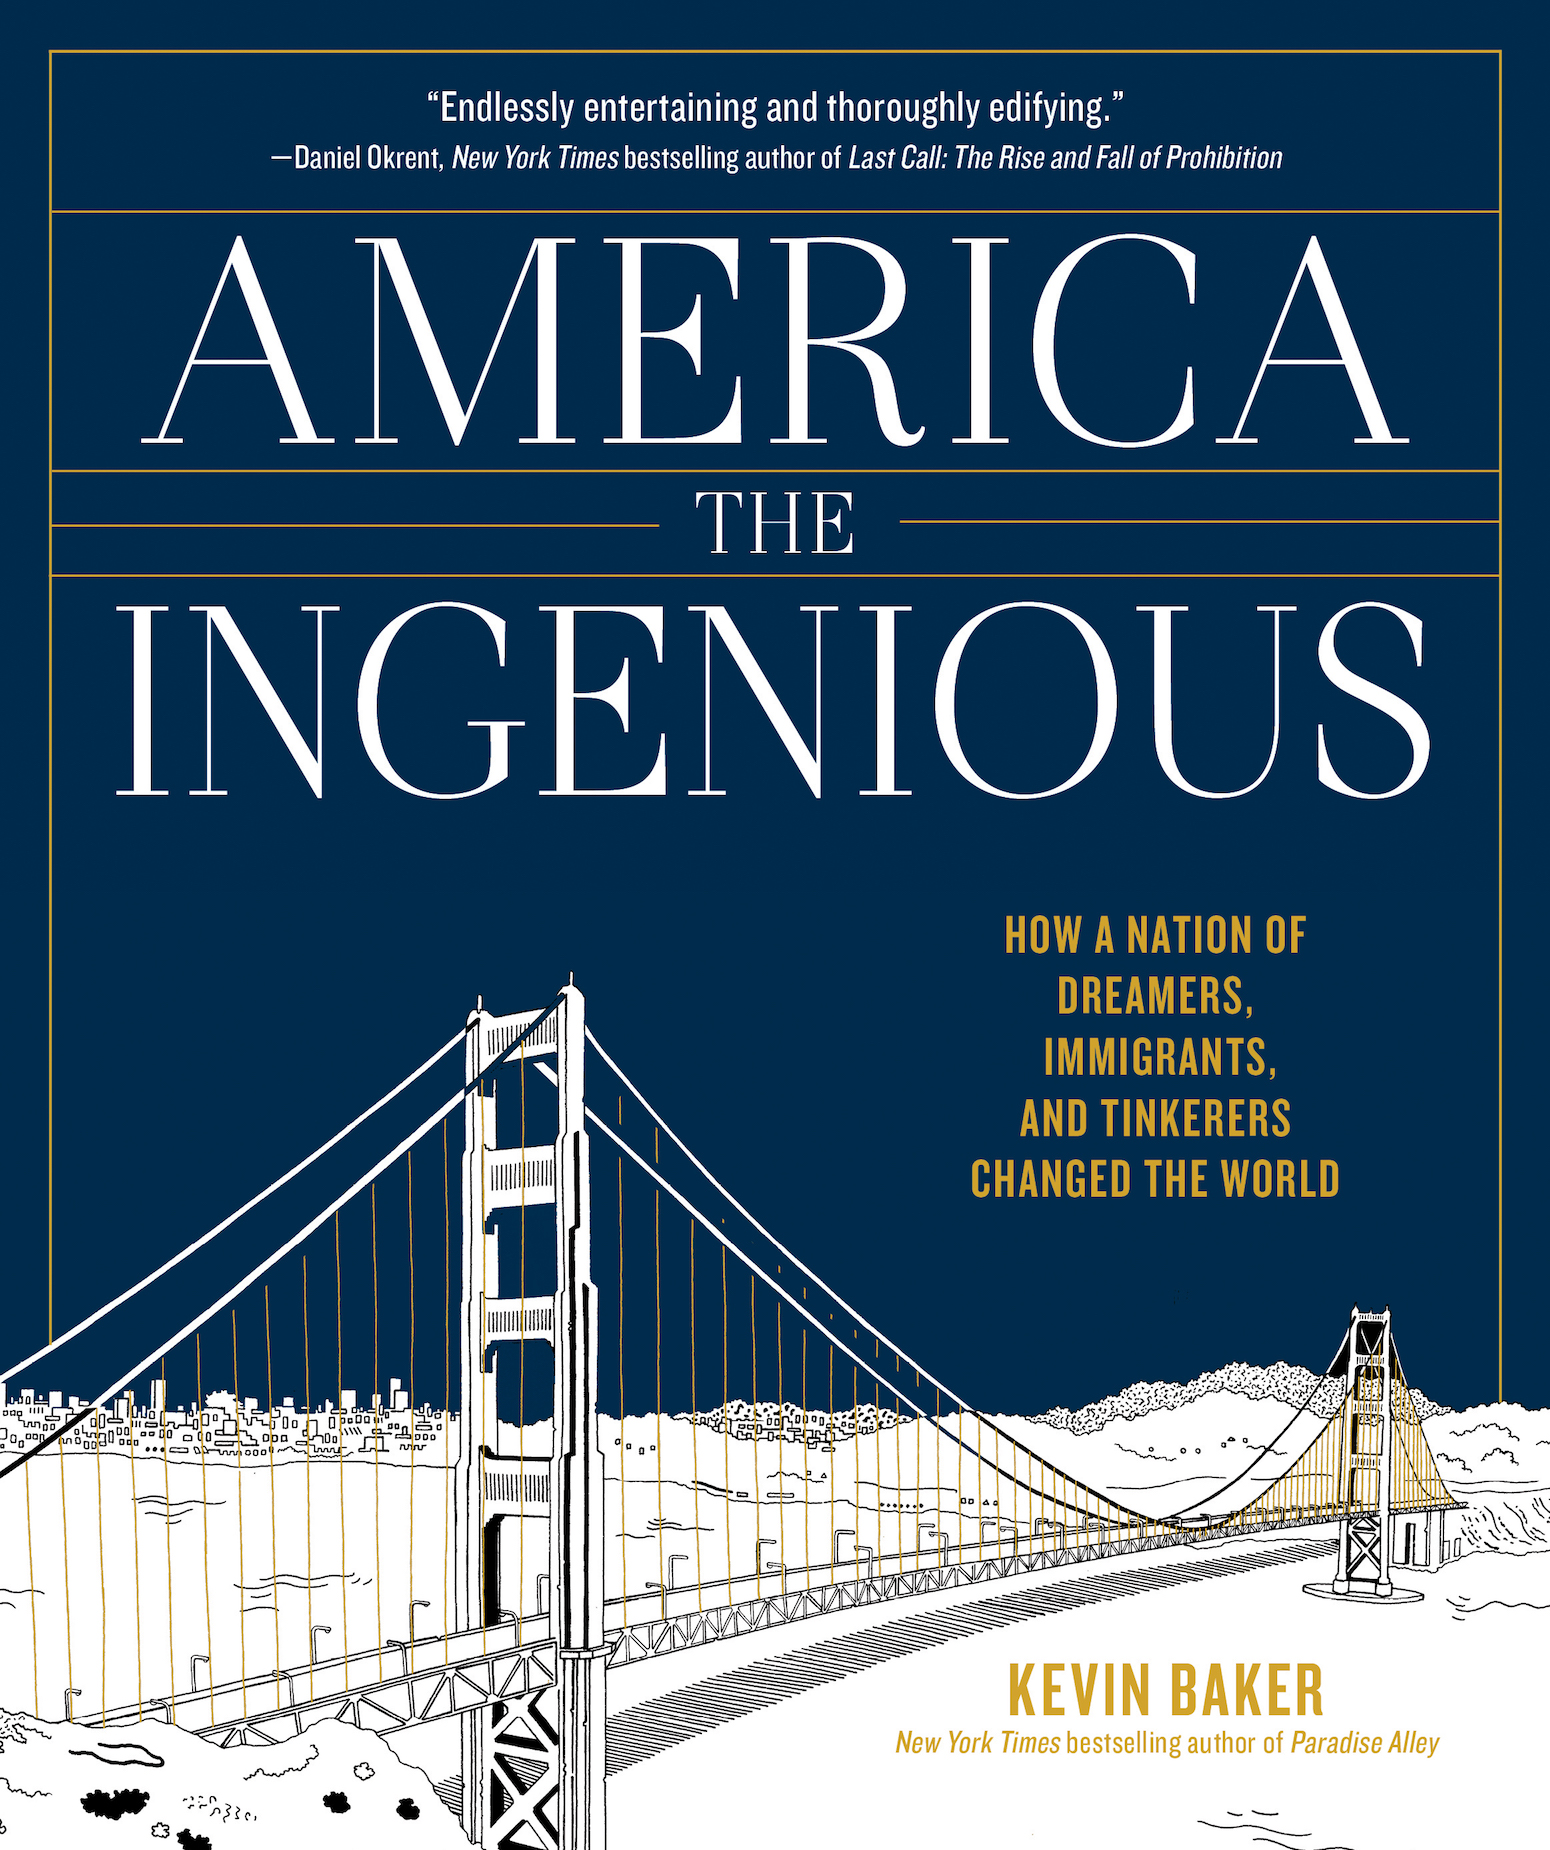 Book Launch: America the Ingenious: How a Nation of Dreamers, Immigrants, and Tinkerers Changed the World by Kevin Baker